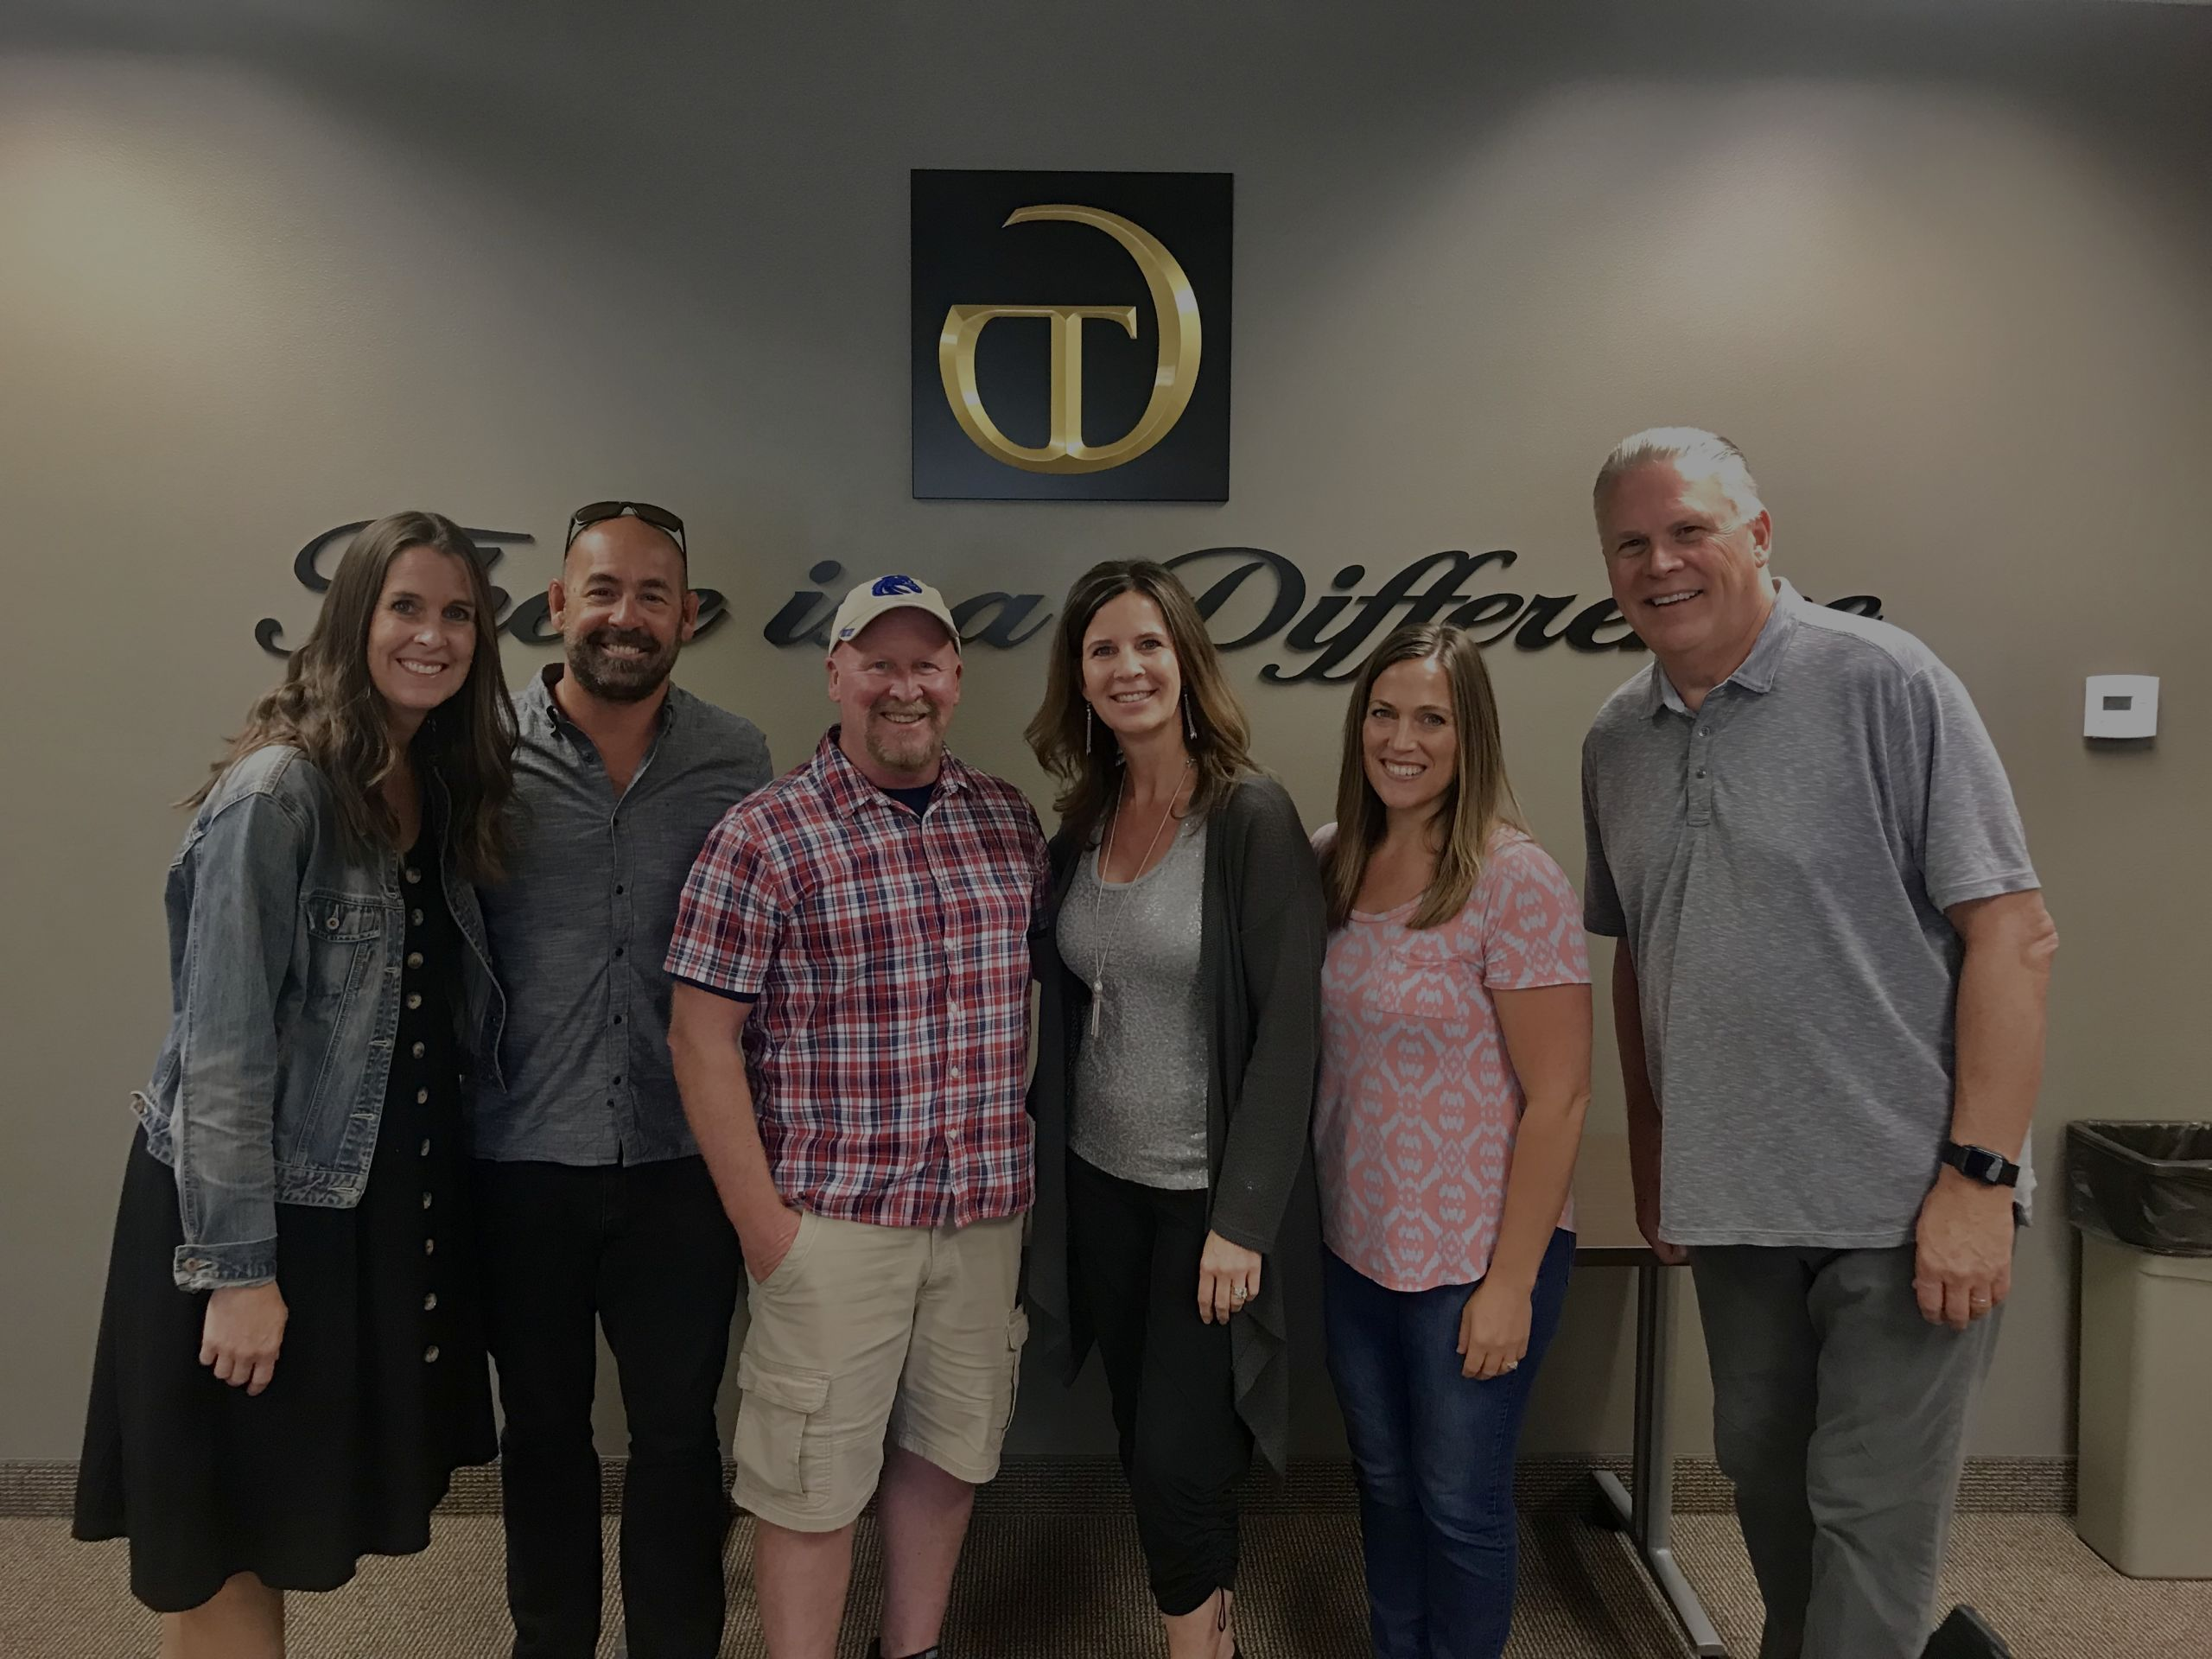 Realtor® Rebecca Van Camp Launches Southwest Idaho's First Relocation Brokerage Firm, Relocate 208